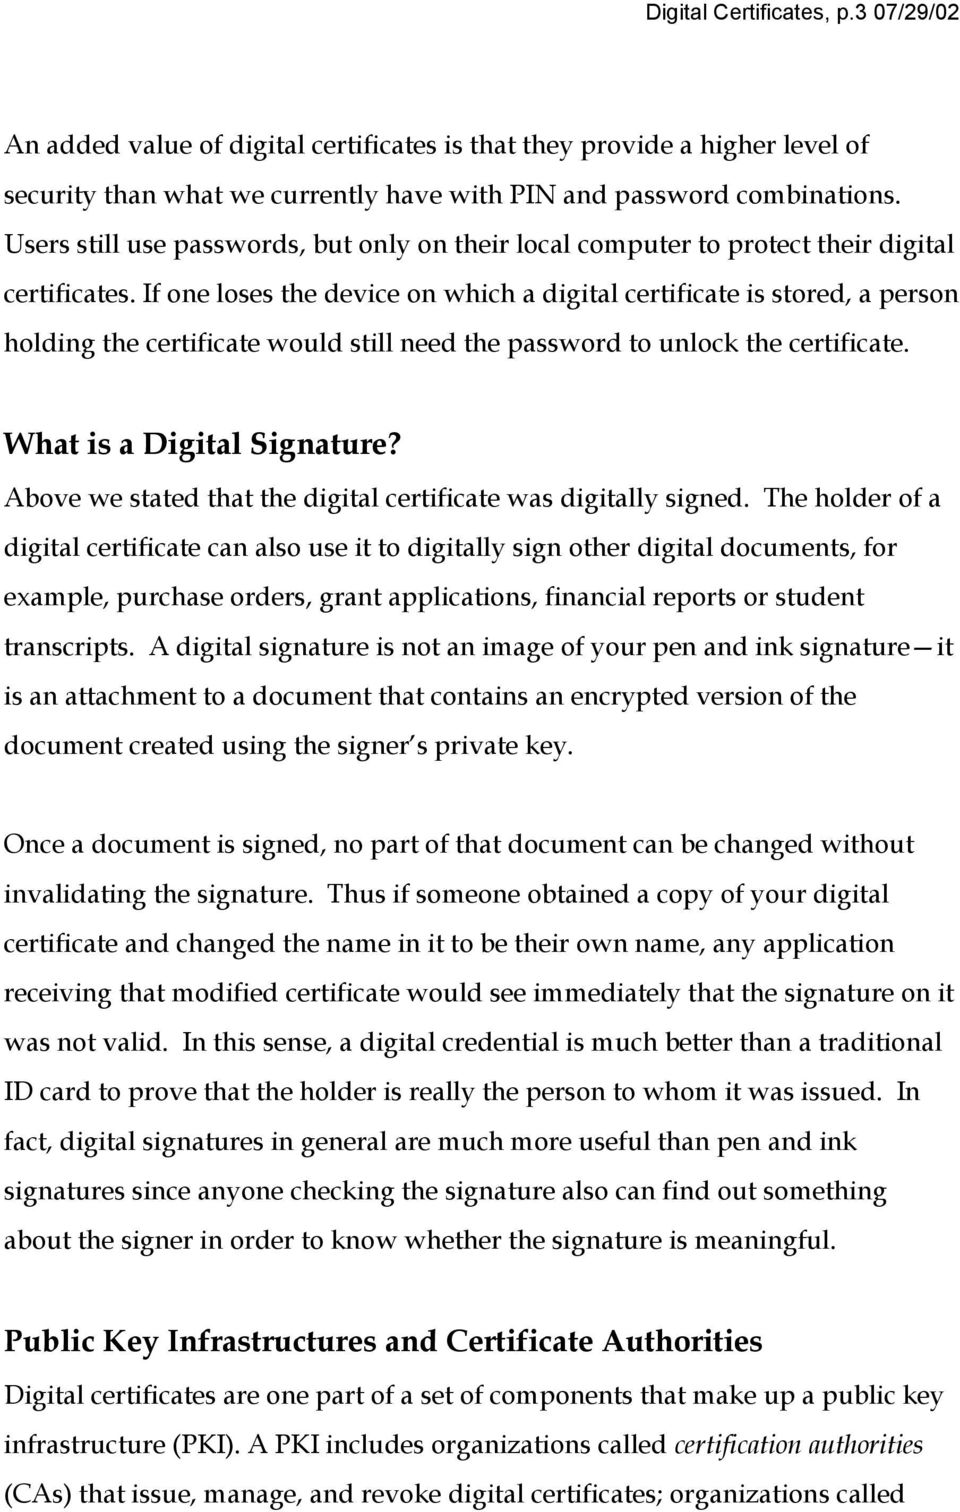 If one loses the device on which a digital certificate is stored, a person holding the certificate would still need the password to unlock the certificate. What is a Digital Signature?